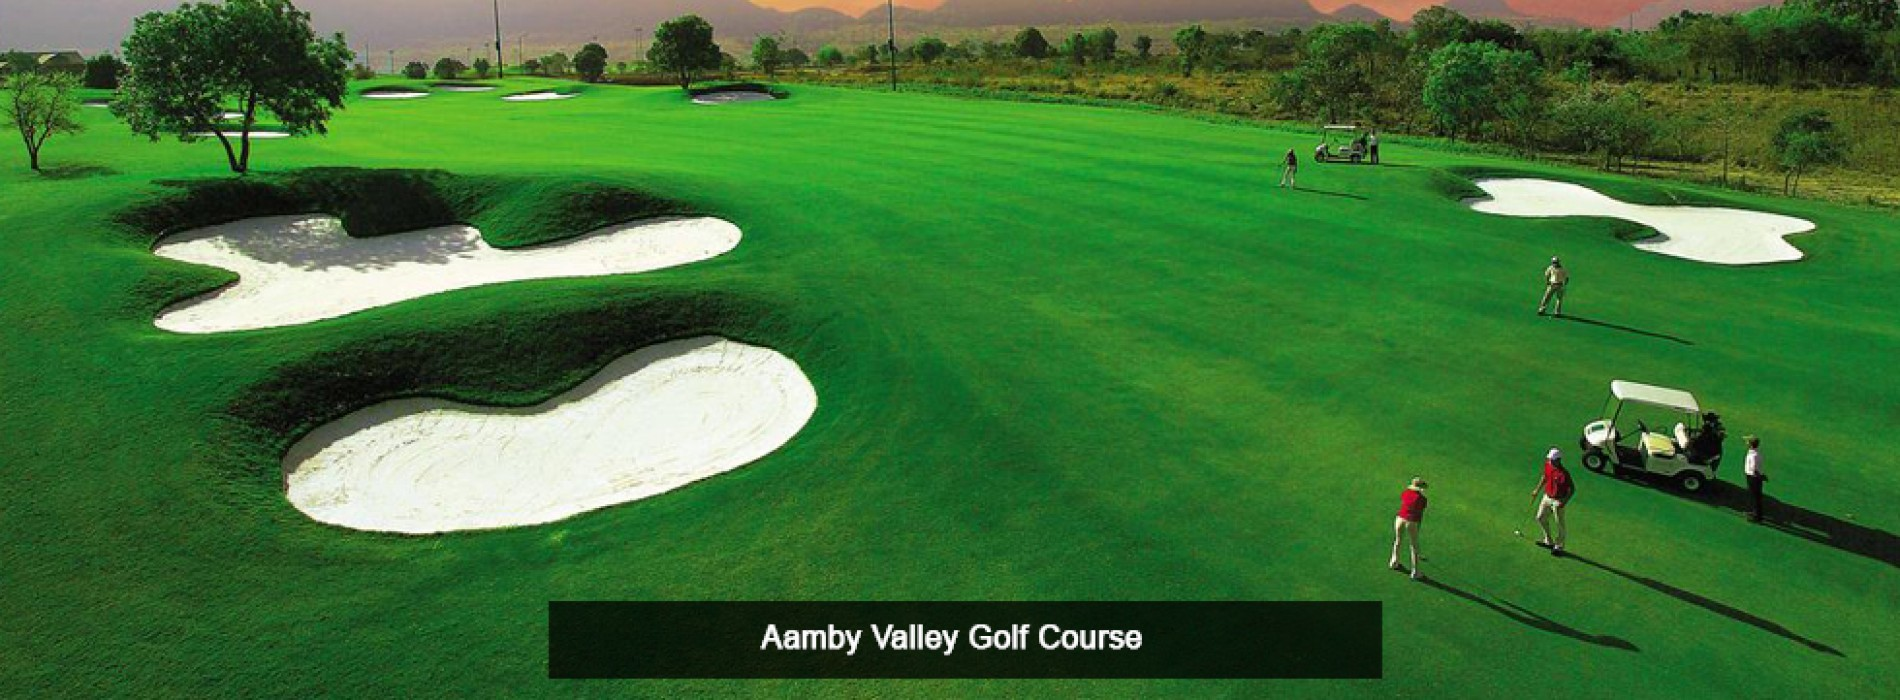 Golf Tourism in India: A Growing Trend That's Here to Stay